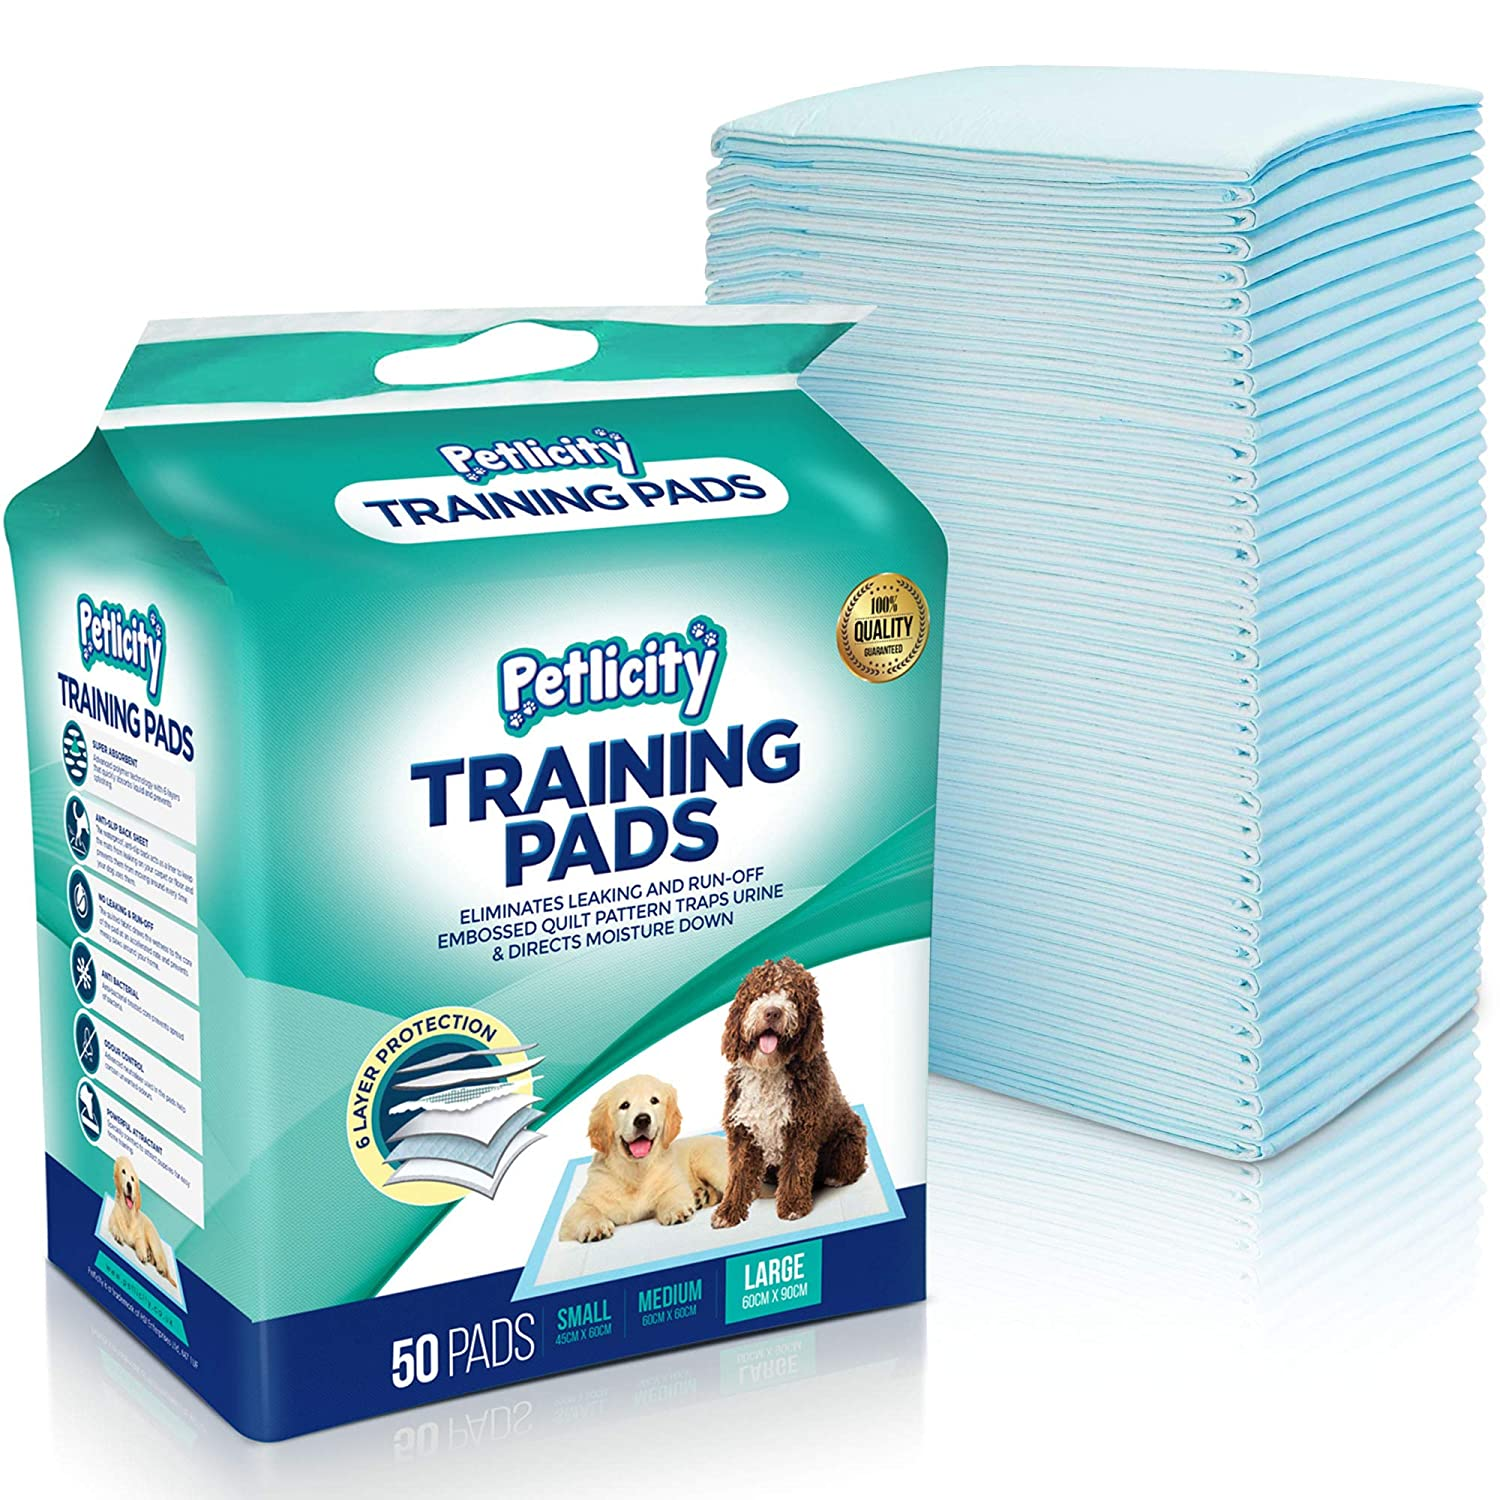 Pack of Puppy Dog Toilet Training Pads - Highly Absorbent Mats to protect your Floor, Carpets and Furniture from Pet Pee Wee Mess (Large (60x90cm), 100 Pack) Petlicity